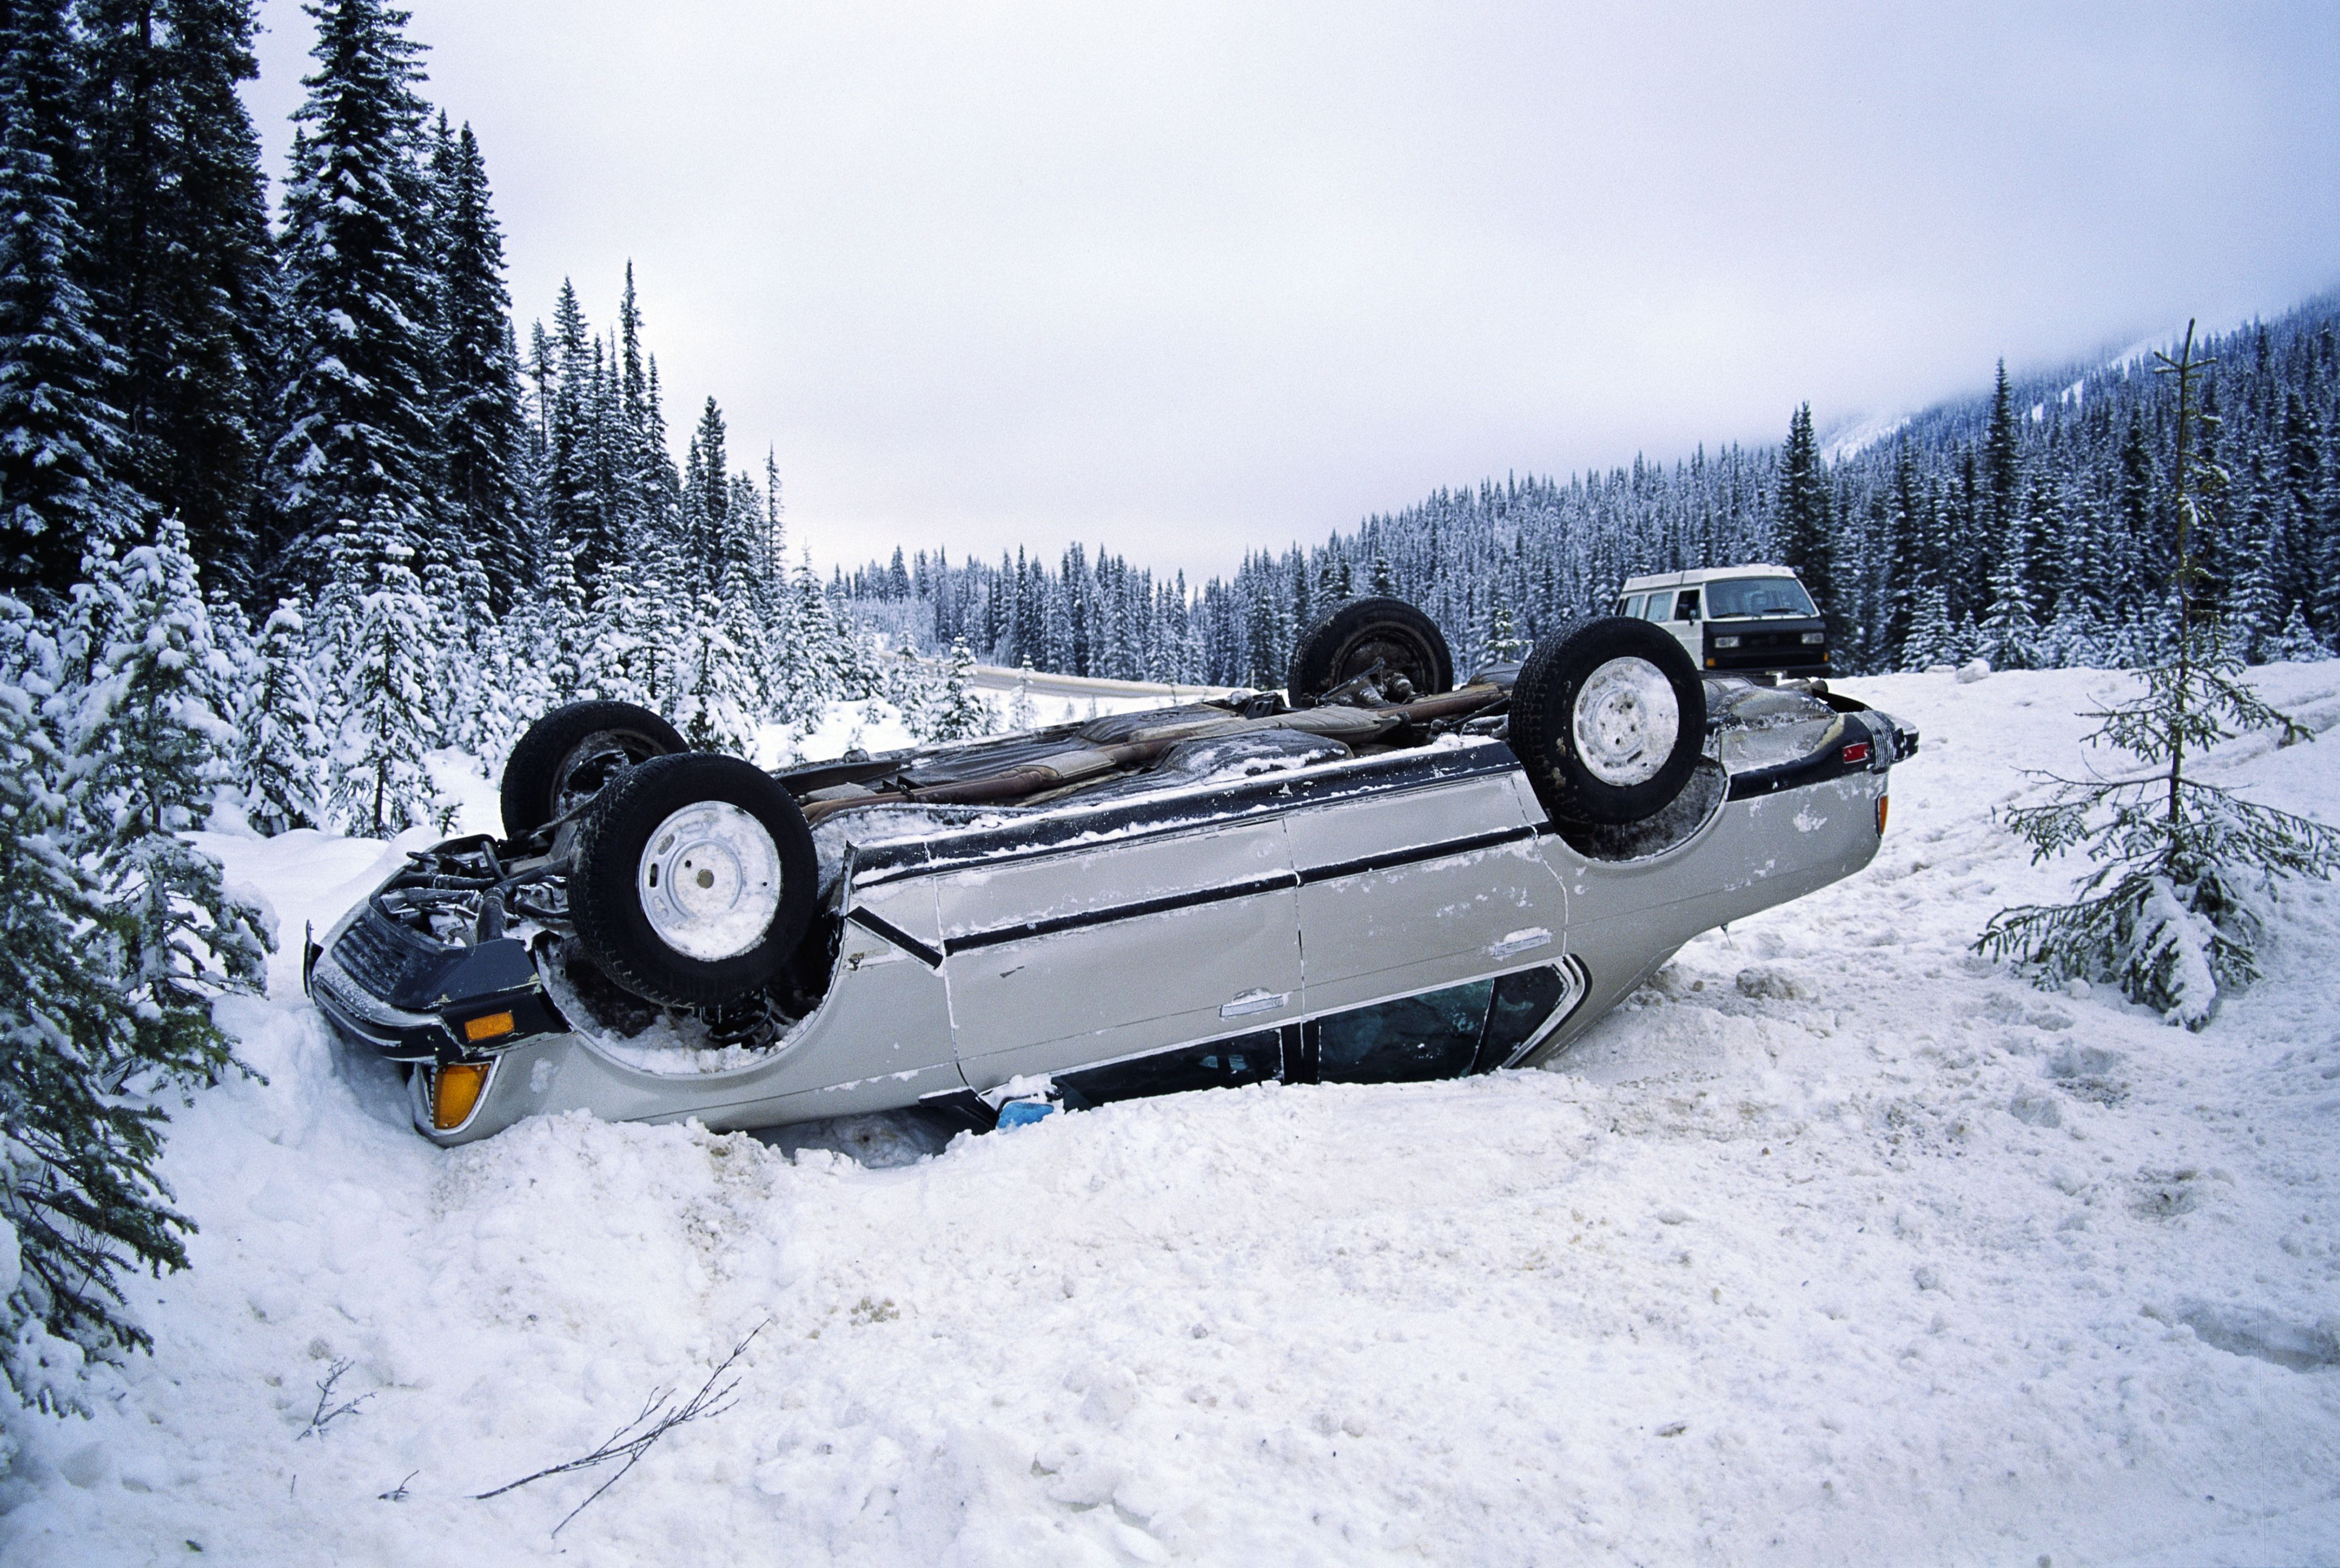 Car Overturned in Snow